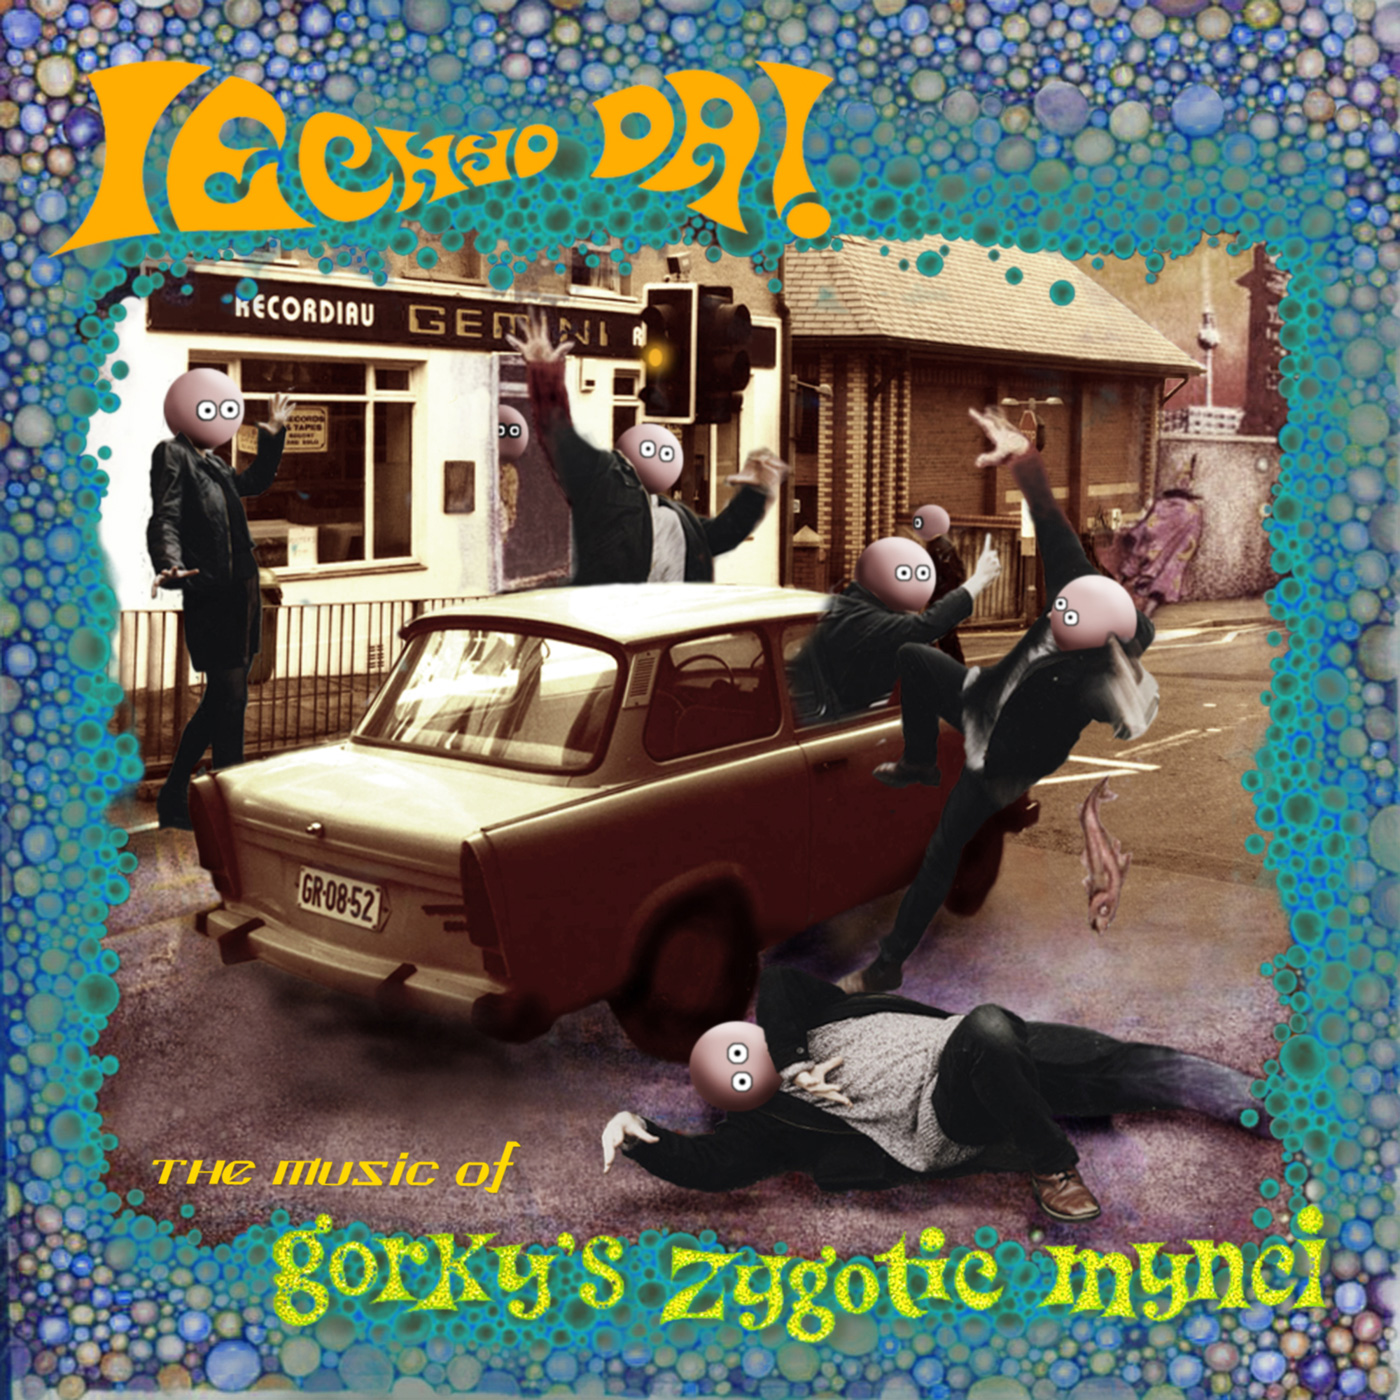 IN CONVERSATION: Ash Cooke (Recordiau Prin) on 'Iechyd Da: The Music of Gorky's Zygotic Mynci'